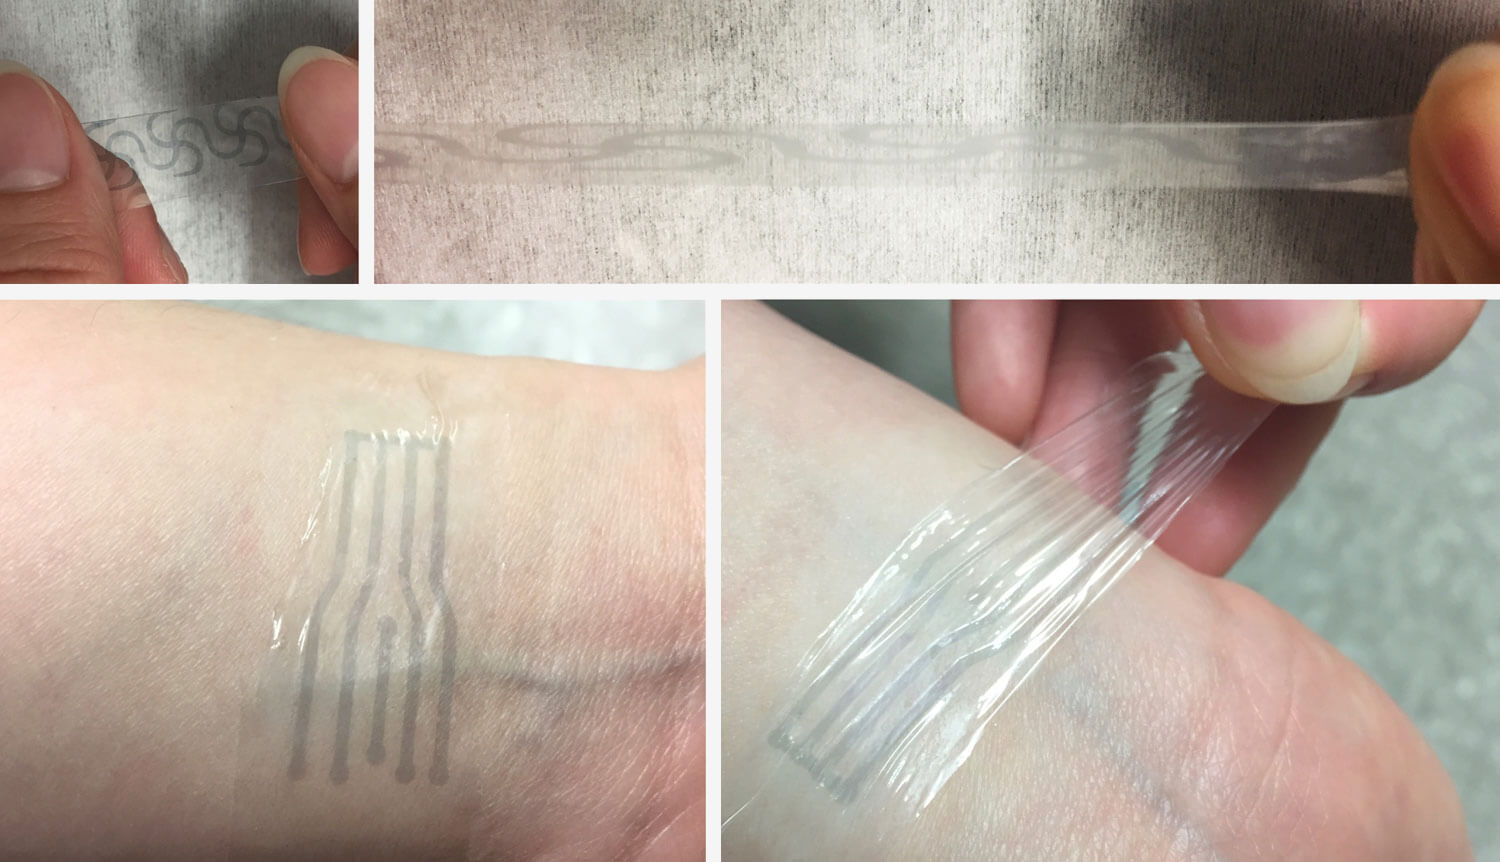 Researchers create flexible electrodes using soup-like ingredients